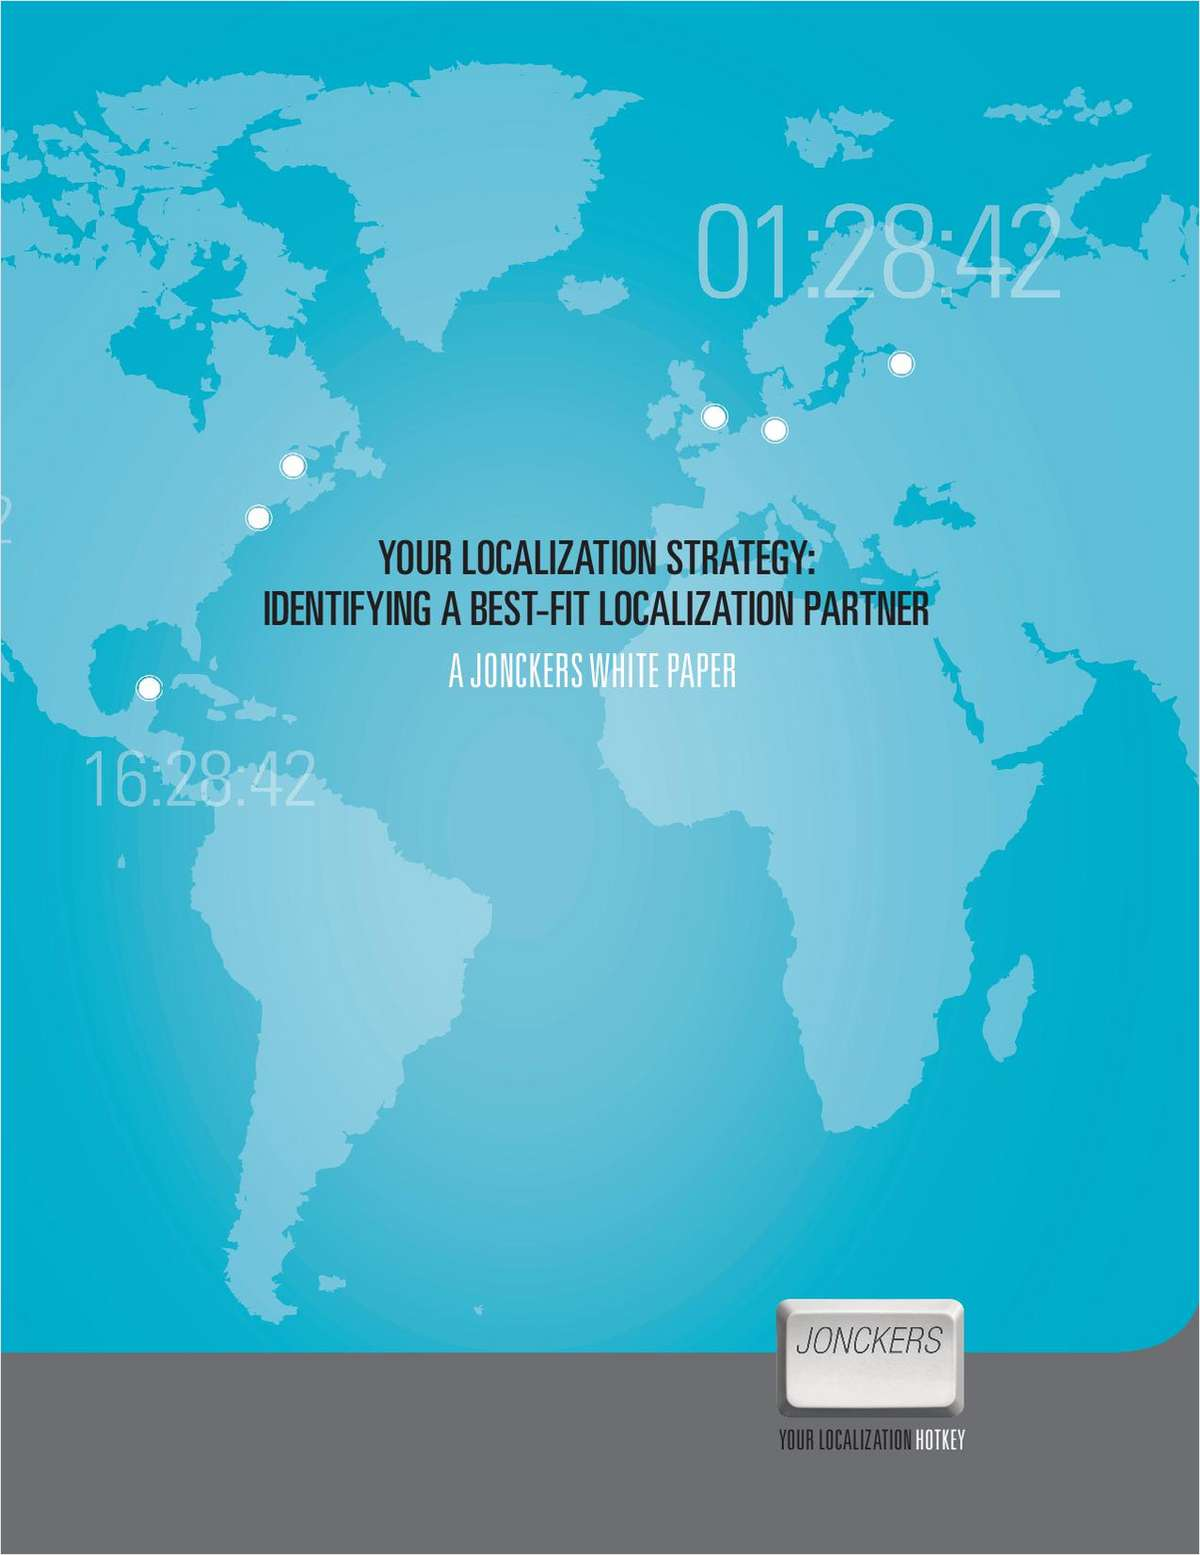 Your Localization Strategy: Identifying a Best-Fit Localization Partner